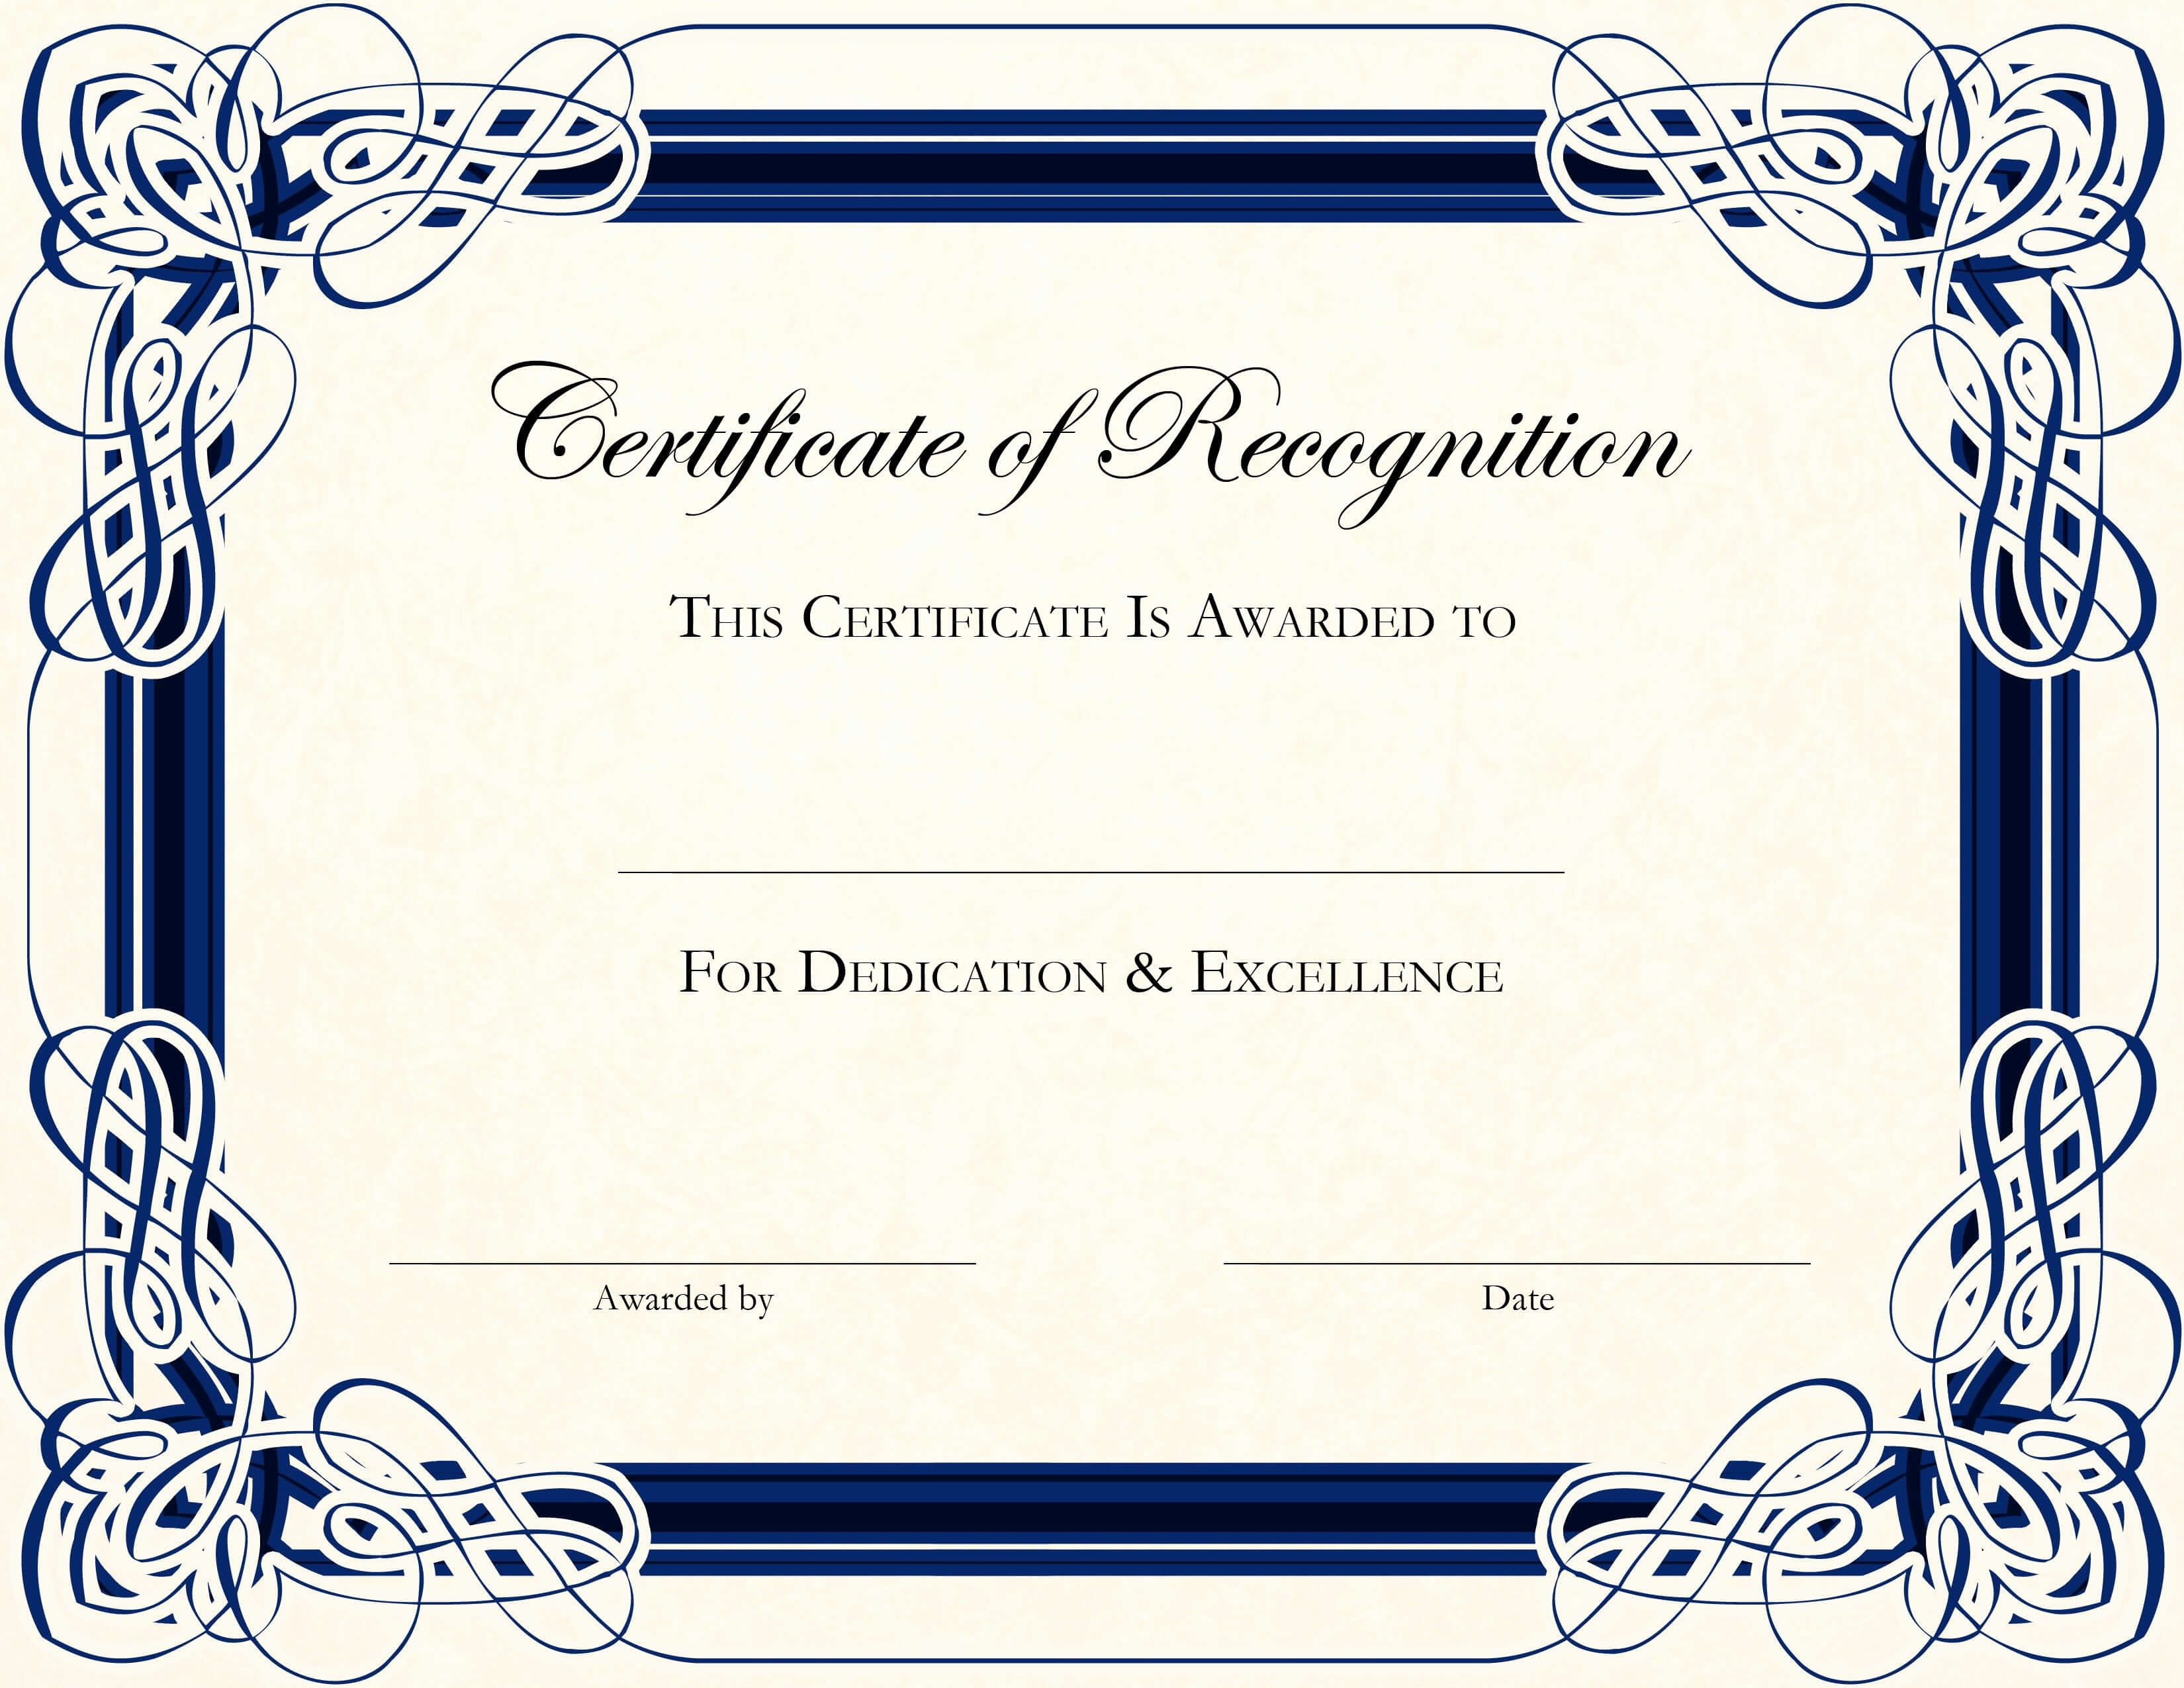 Award Certificate Template Free Best Of Free Funny Award pertaining to Free Funny Award Certificate Templates For Word